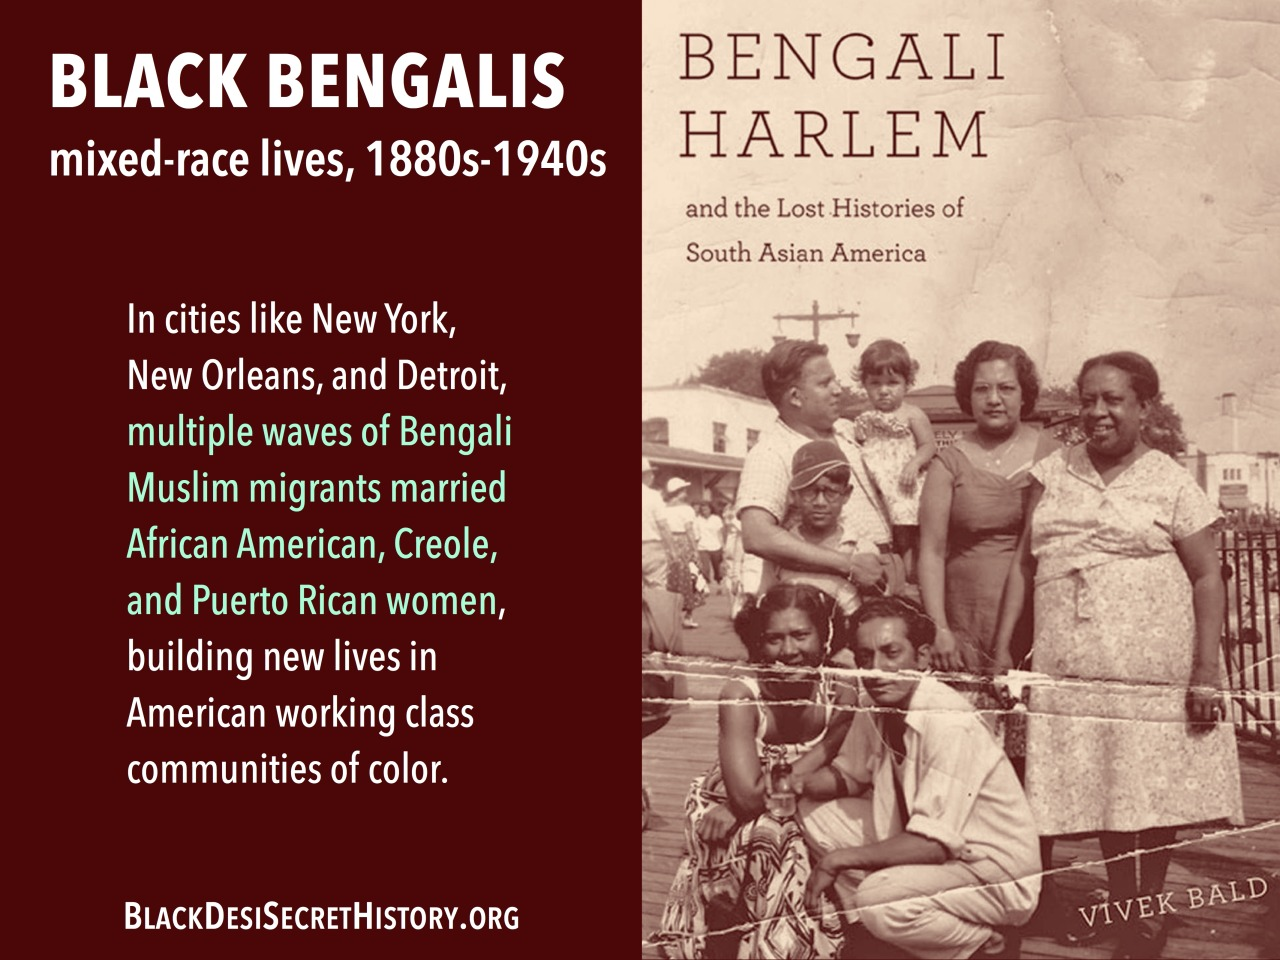 BLACK BENGALIS, mixed-race lives, 1880s-1940s: In cities like New York, New Orleans, and Detroit, multiple waves of Bengali Muslim migrants married African American, Creole, and Puerto Rican women, building new lives in American working class communities of color.